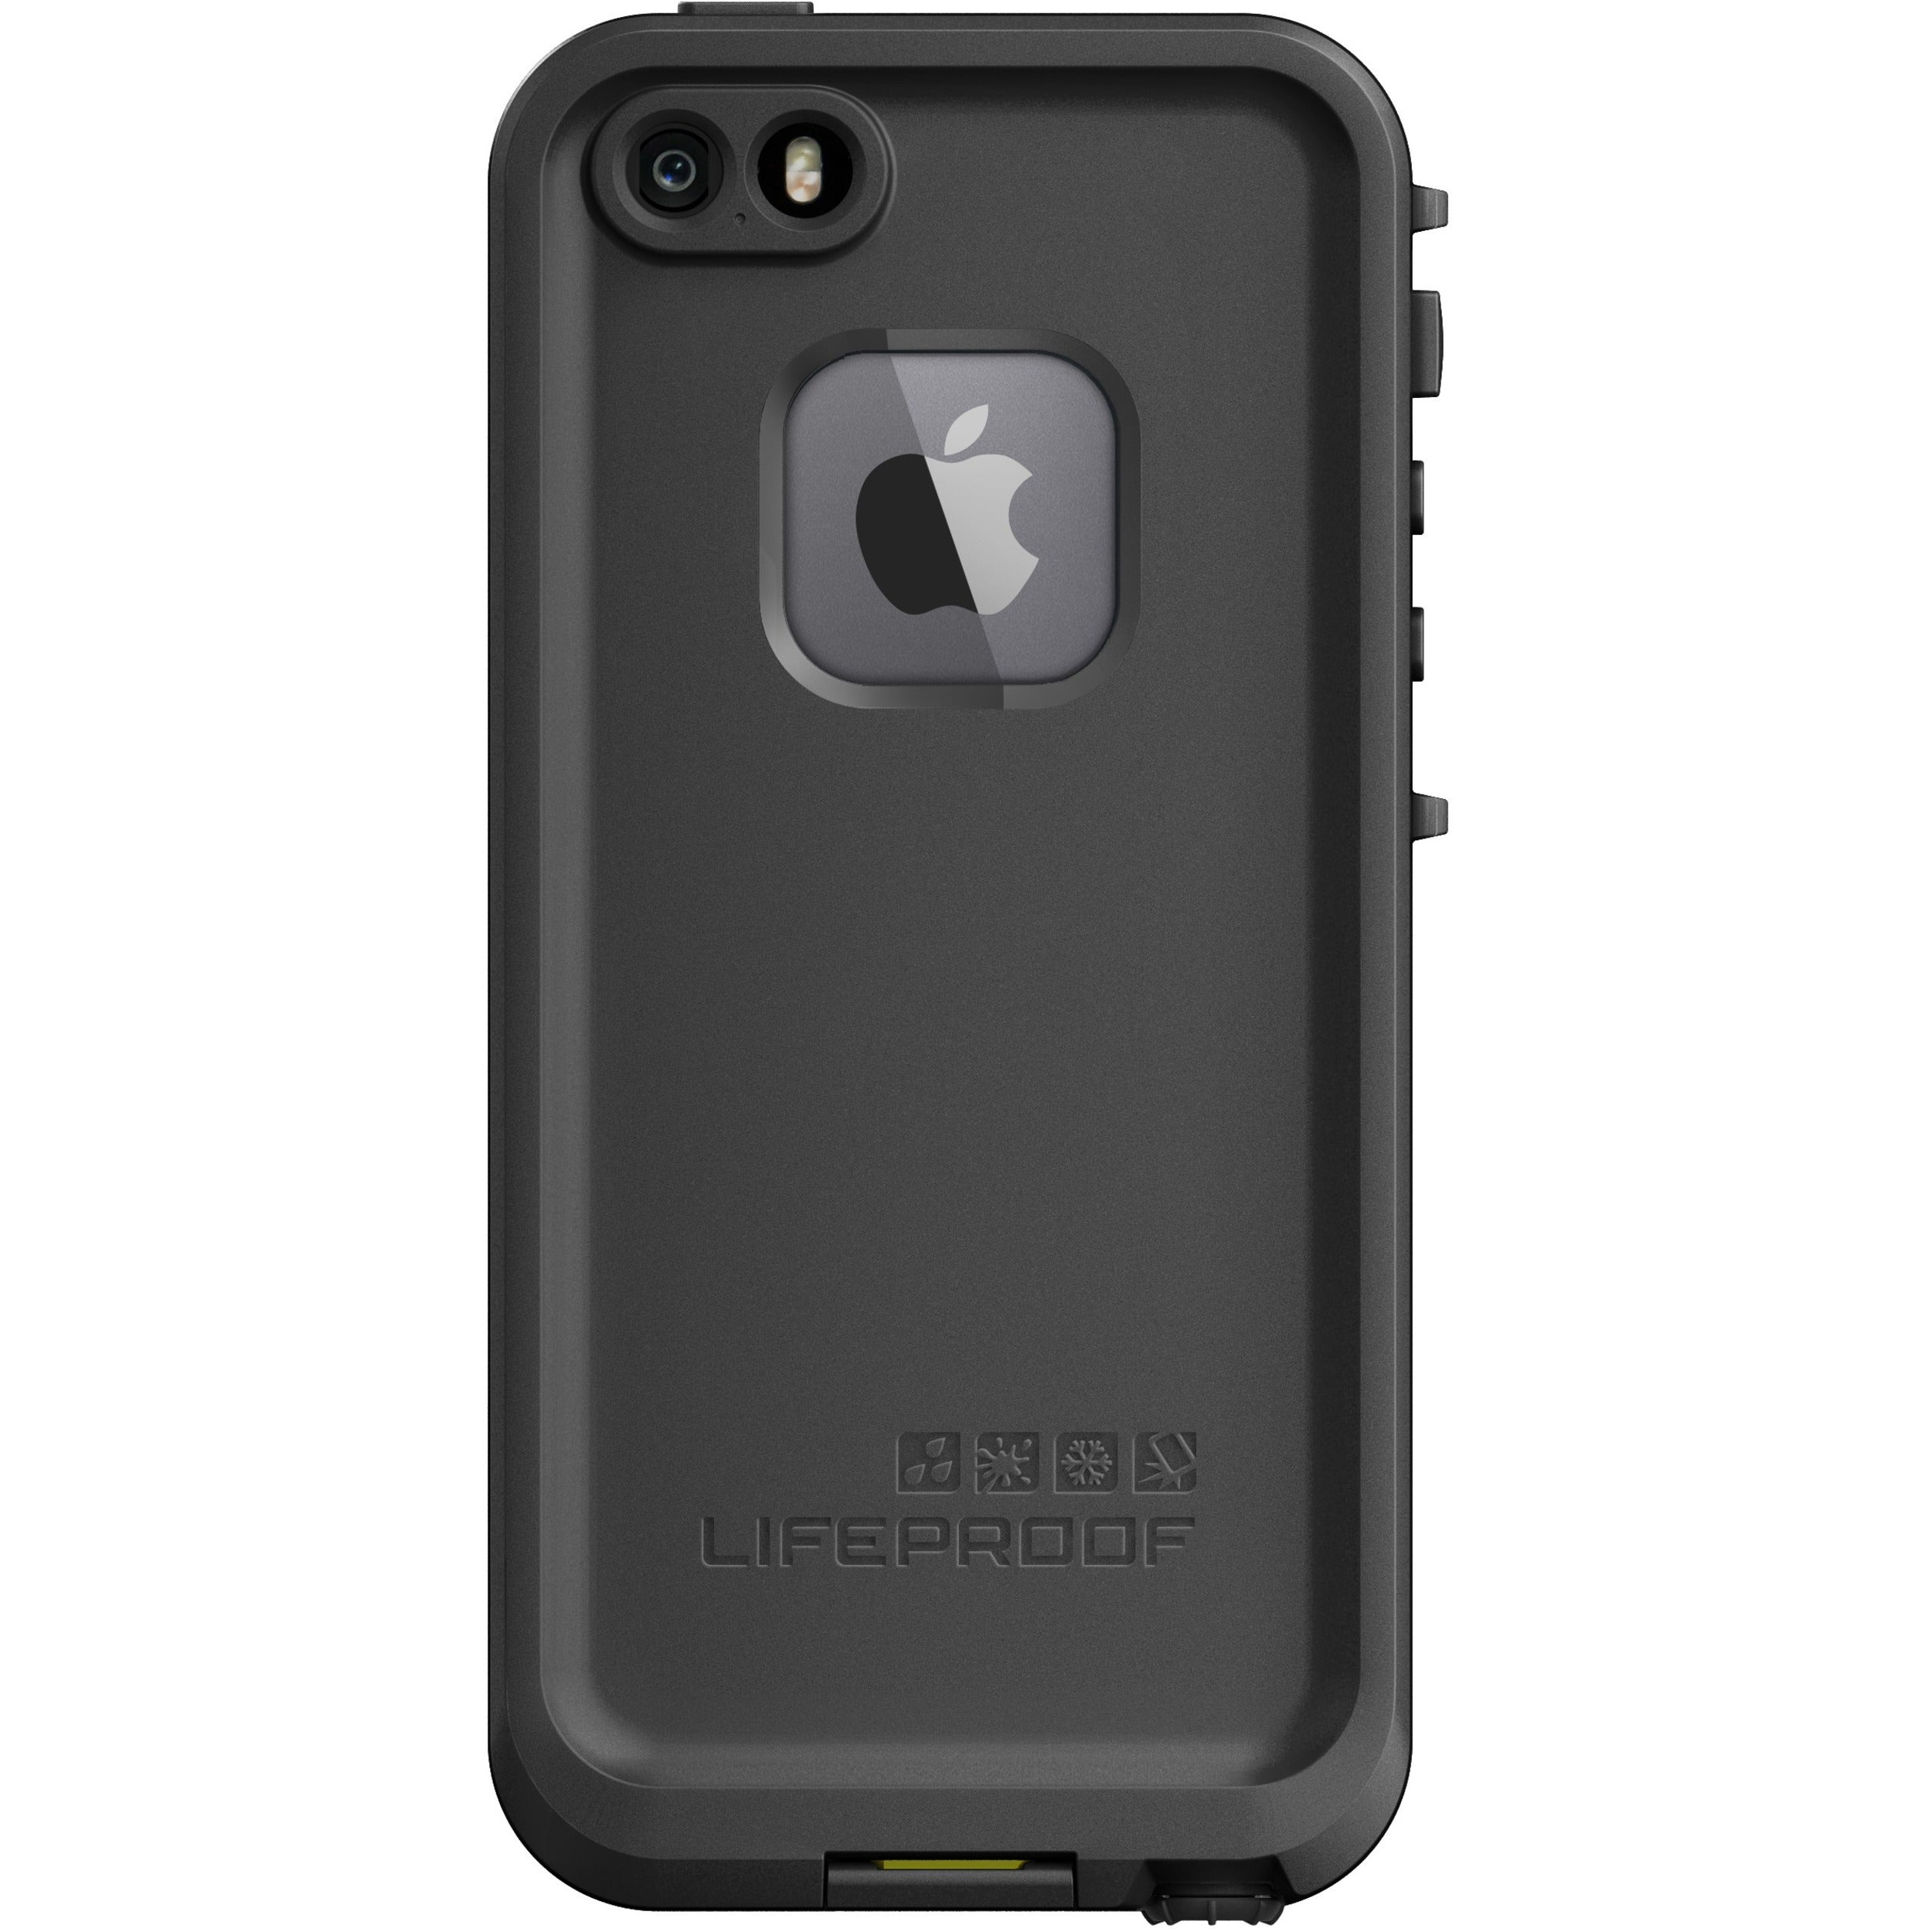 Otterbox LifeProof FR? for iPhone 5/5s/SE Case, Black #77...